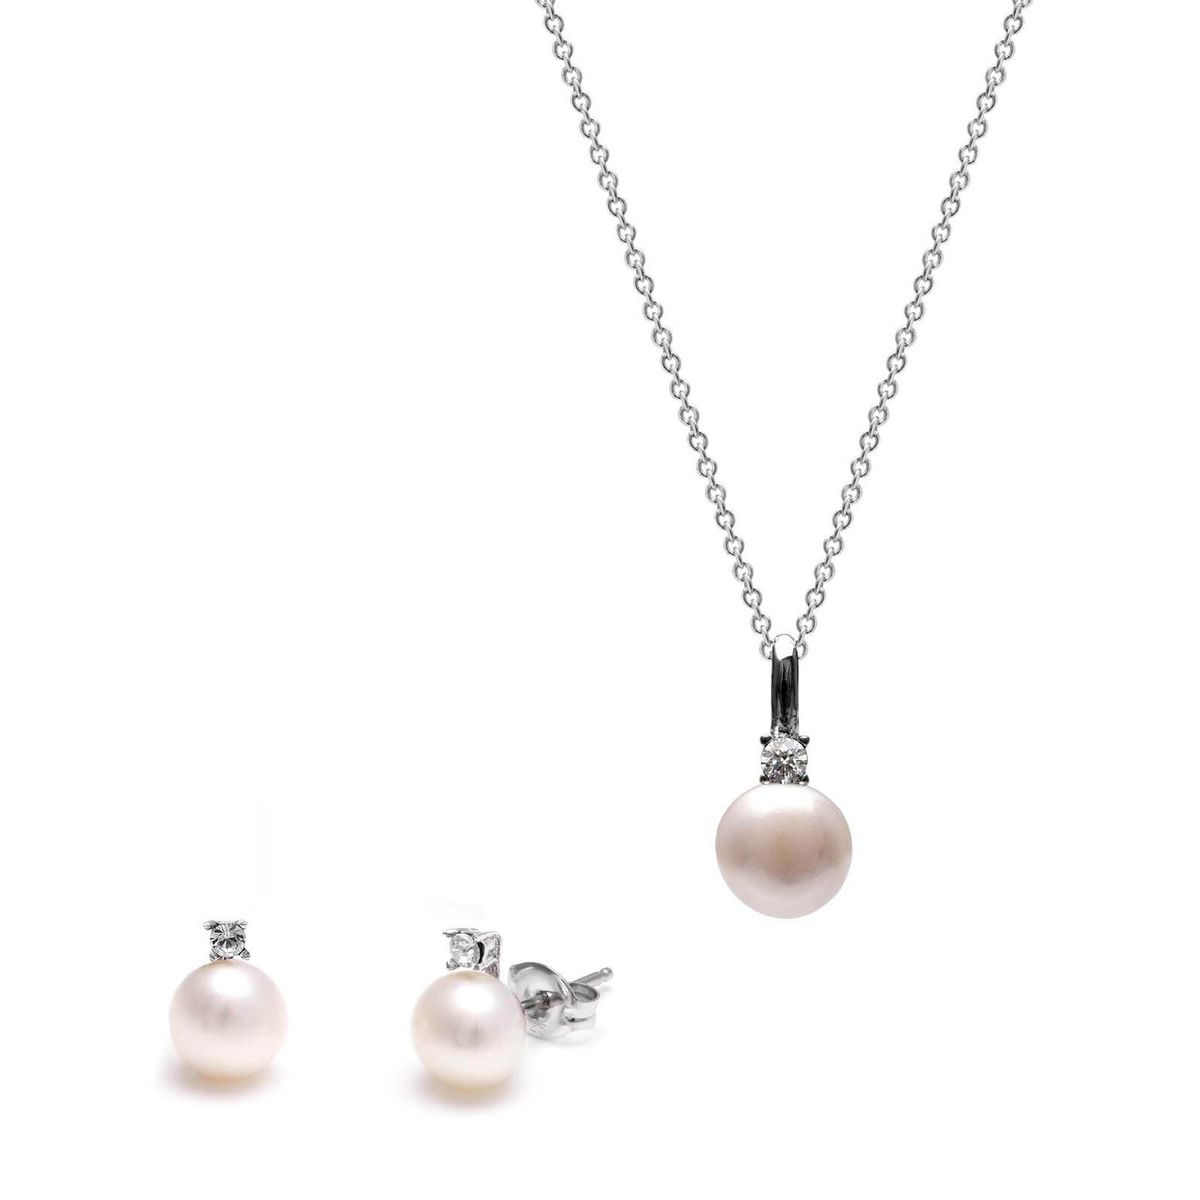 sea products tara oscar pendant collection south pearl pearls golden